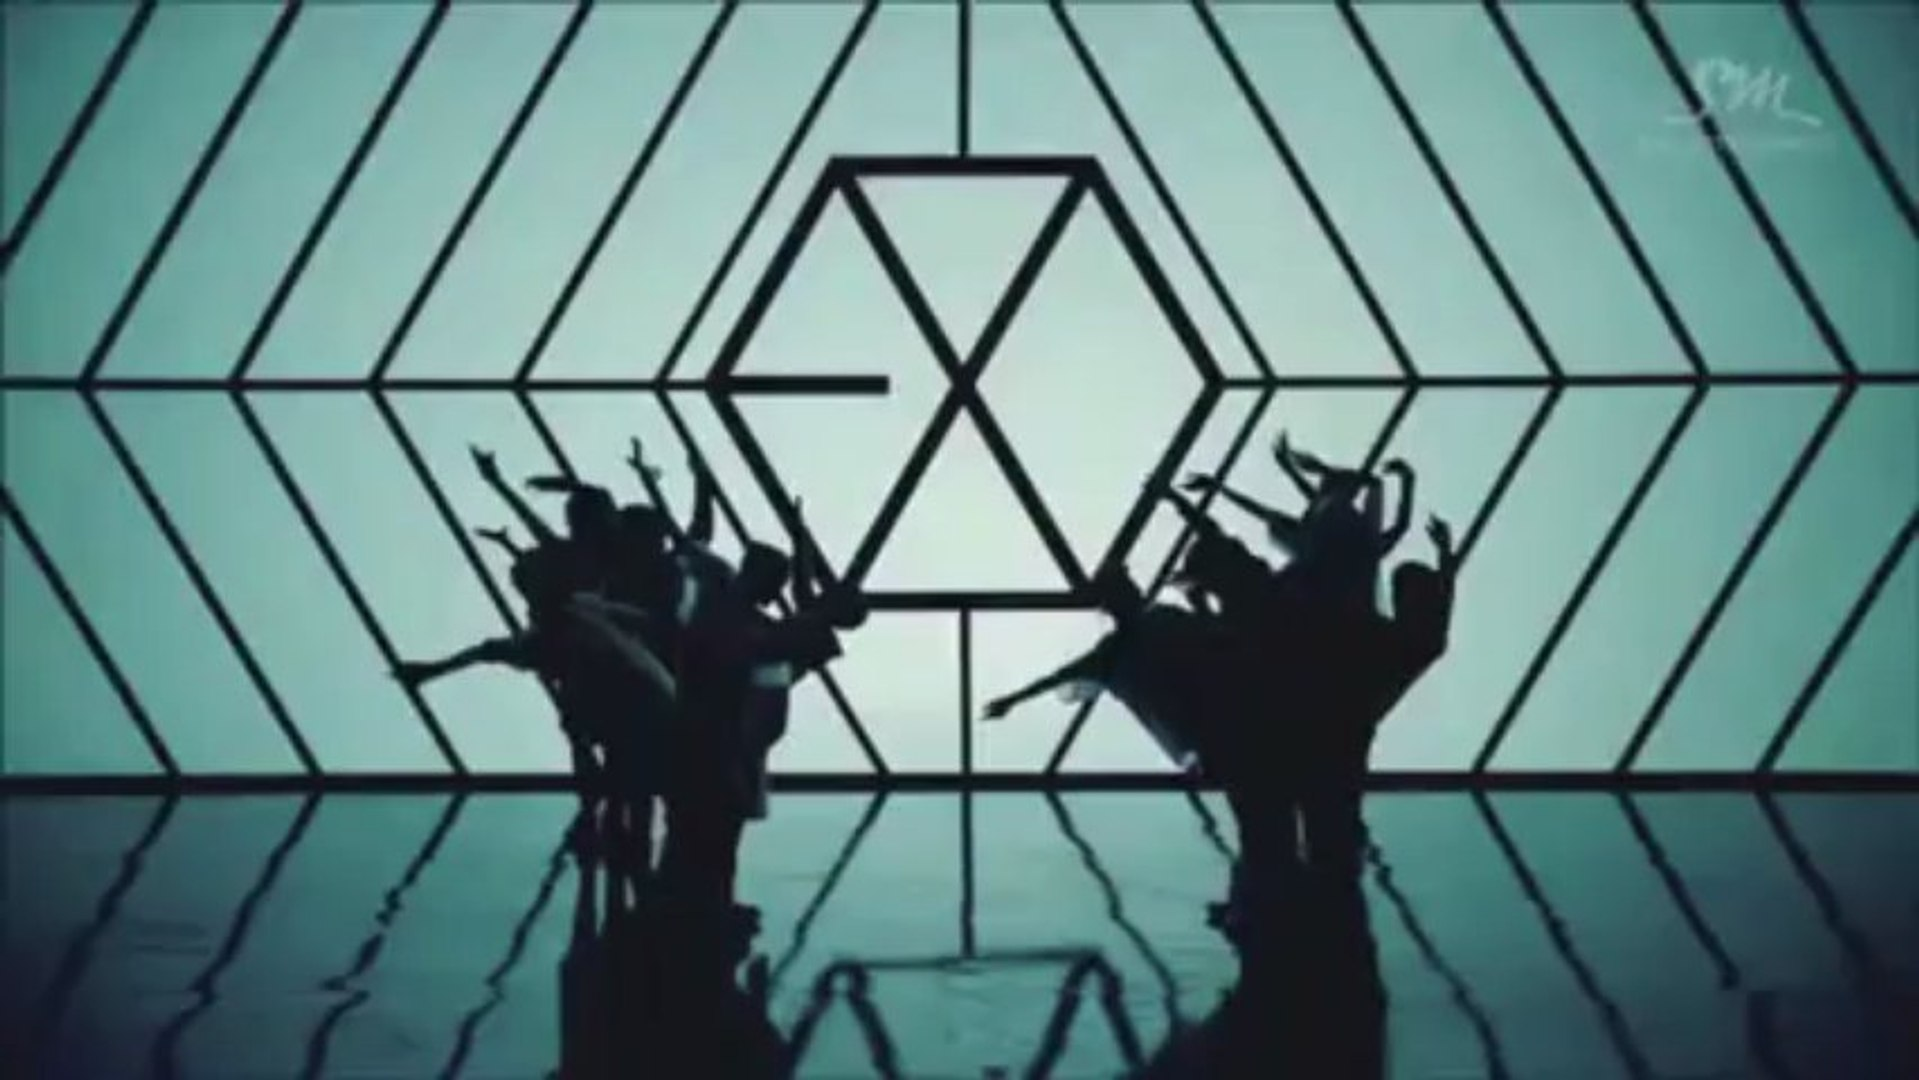 EXO Wolf MV - LEAKED audio funny Music Video (Korean) 늑대와 미녀